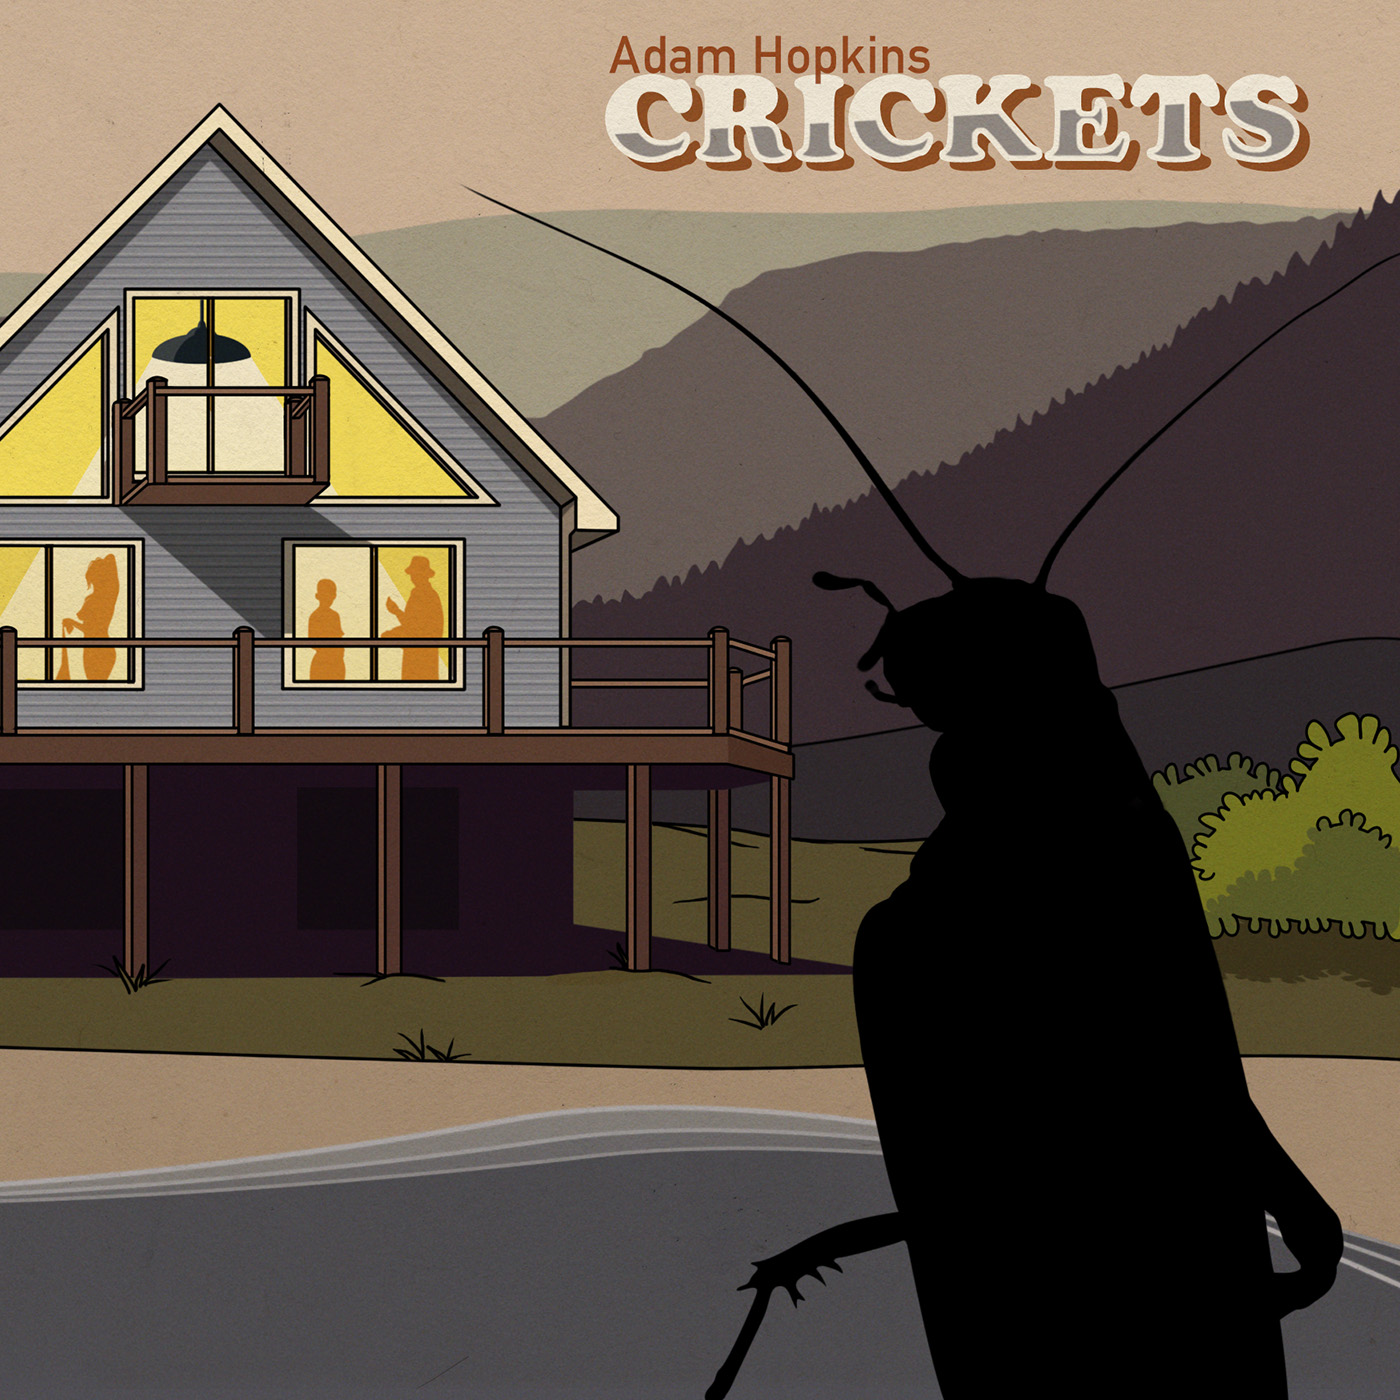 CRICKETS_COVER_SQUARE_B_1400px.JPG